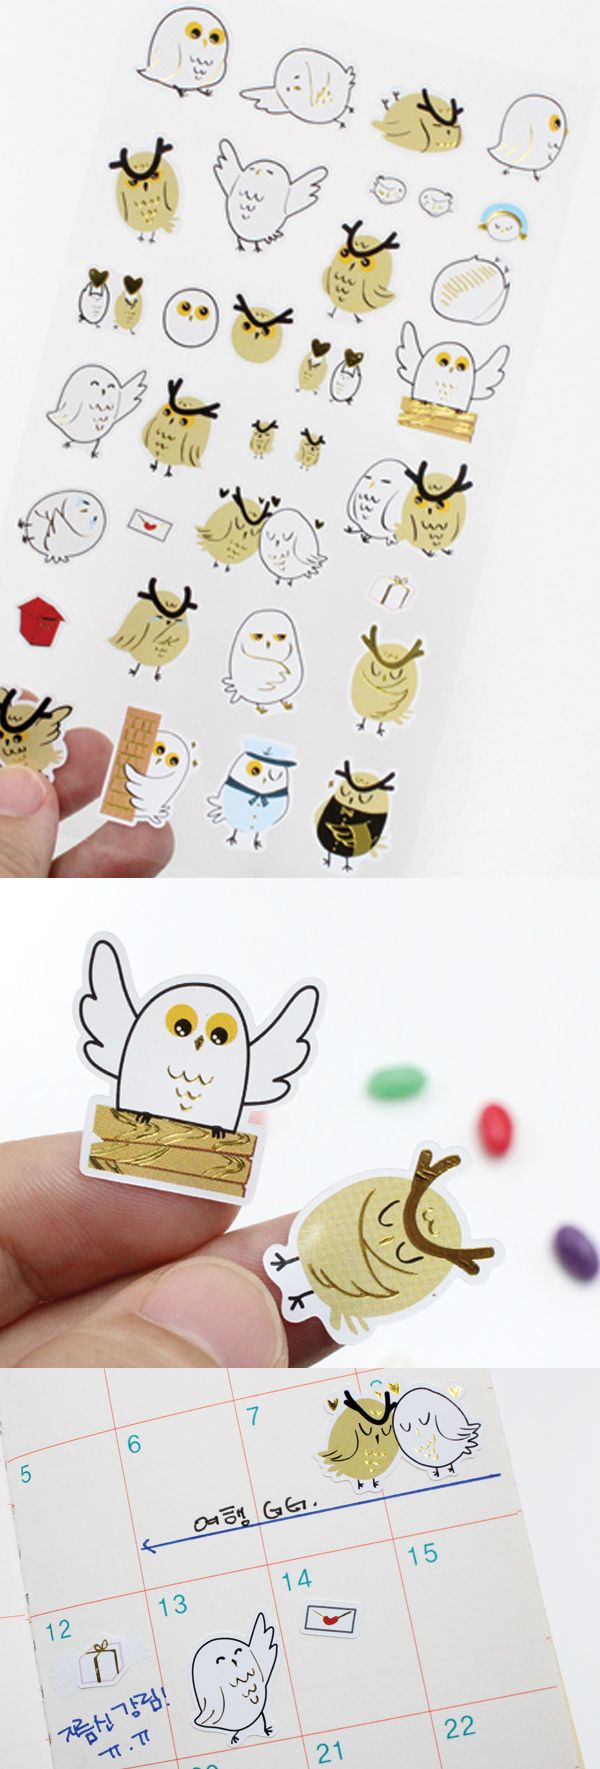 The owls in Twin Owl Petit Sticker are super cute owls that keep me accompanied any time of the day. Whenever I apply them, I always feel like they are protecting me even late at night!